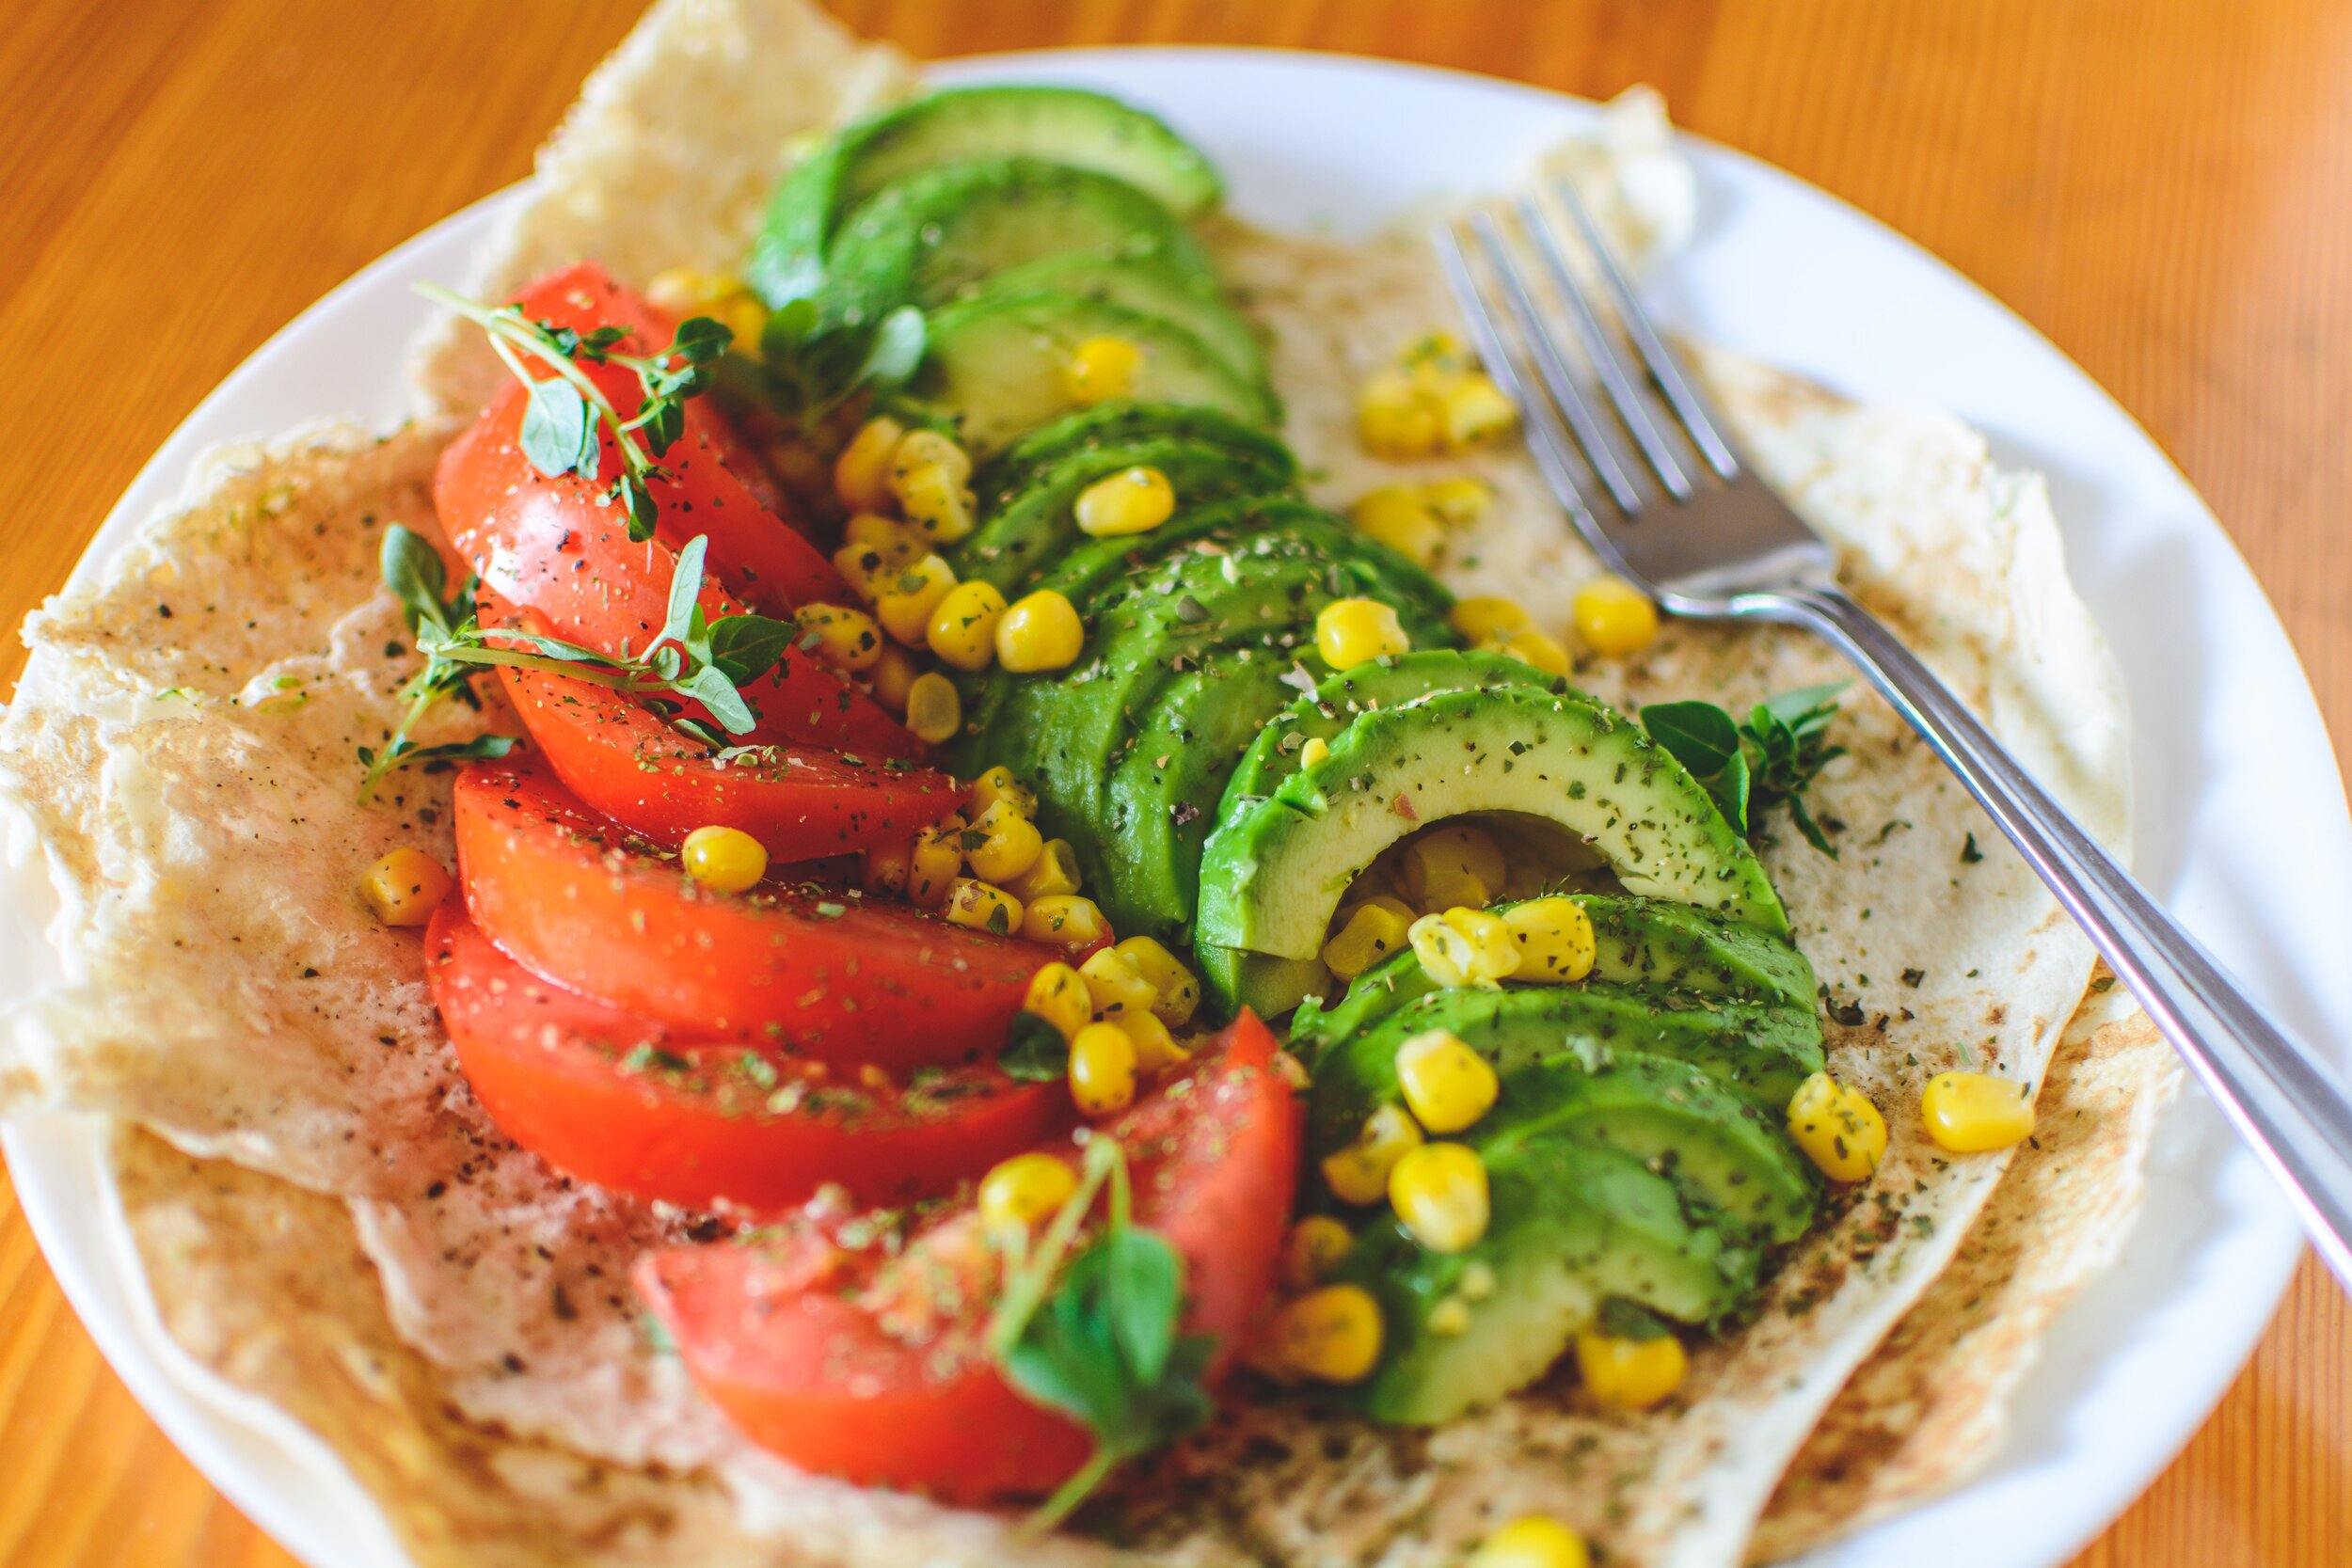 Eat a plant based diet -